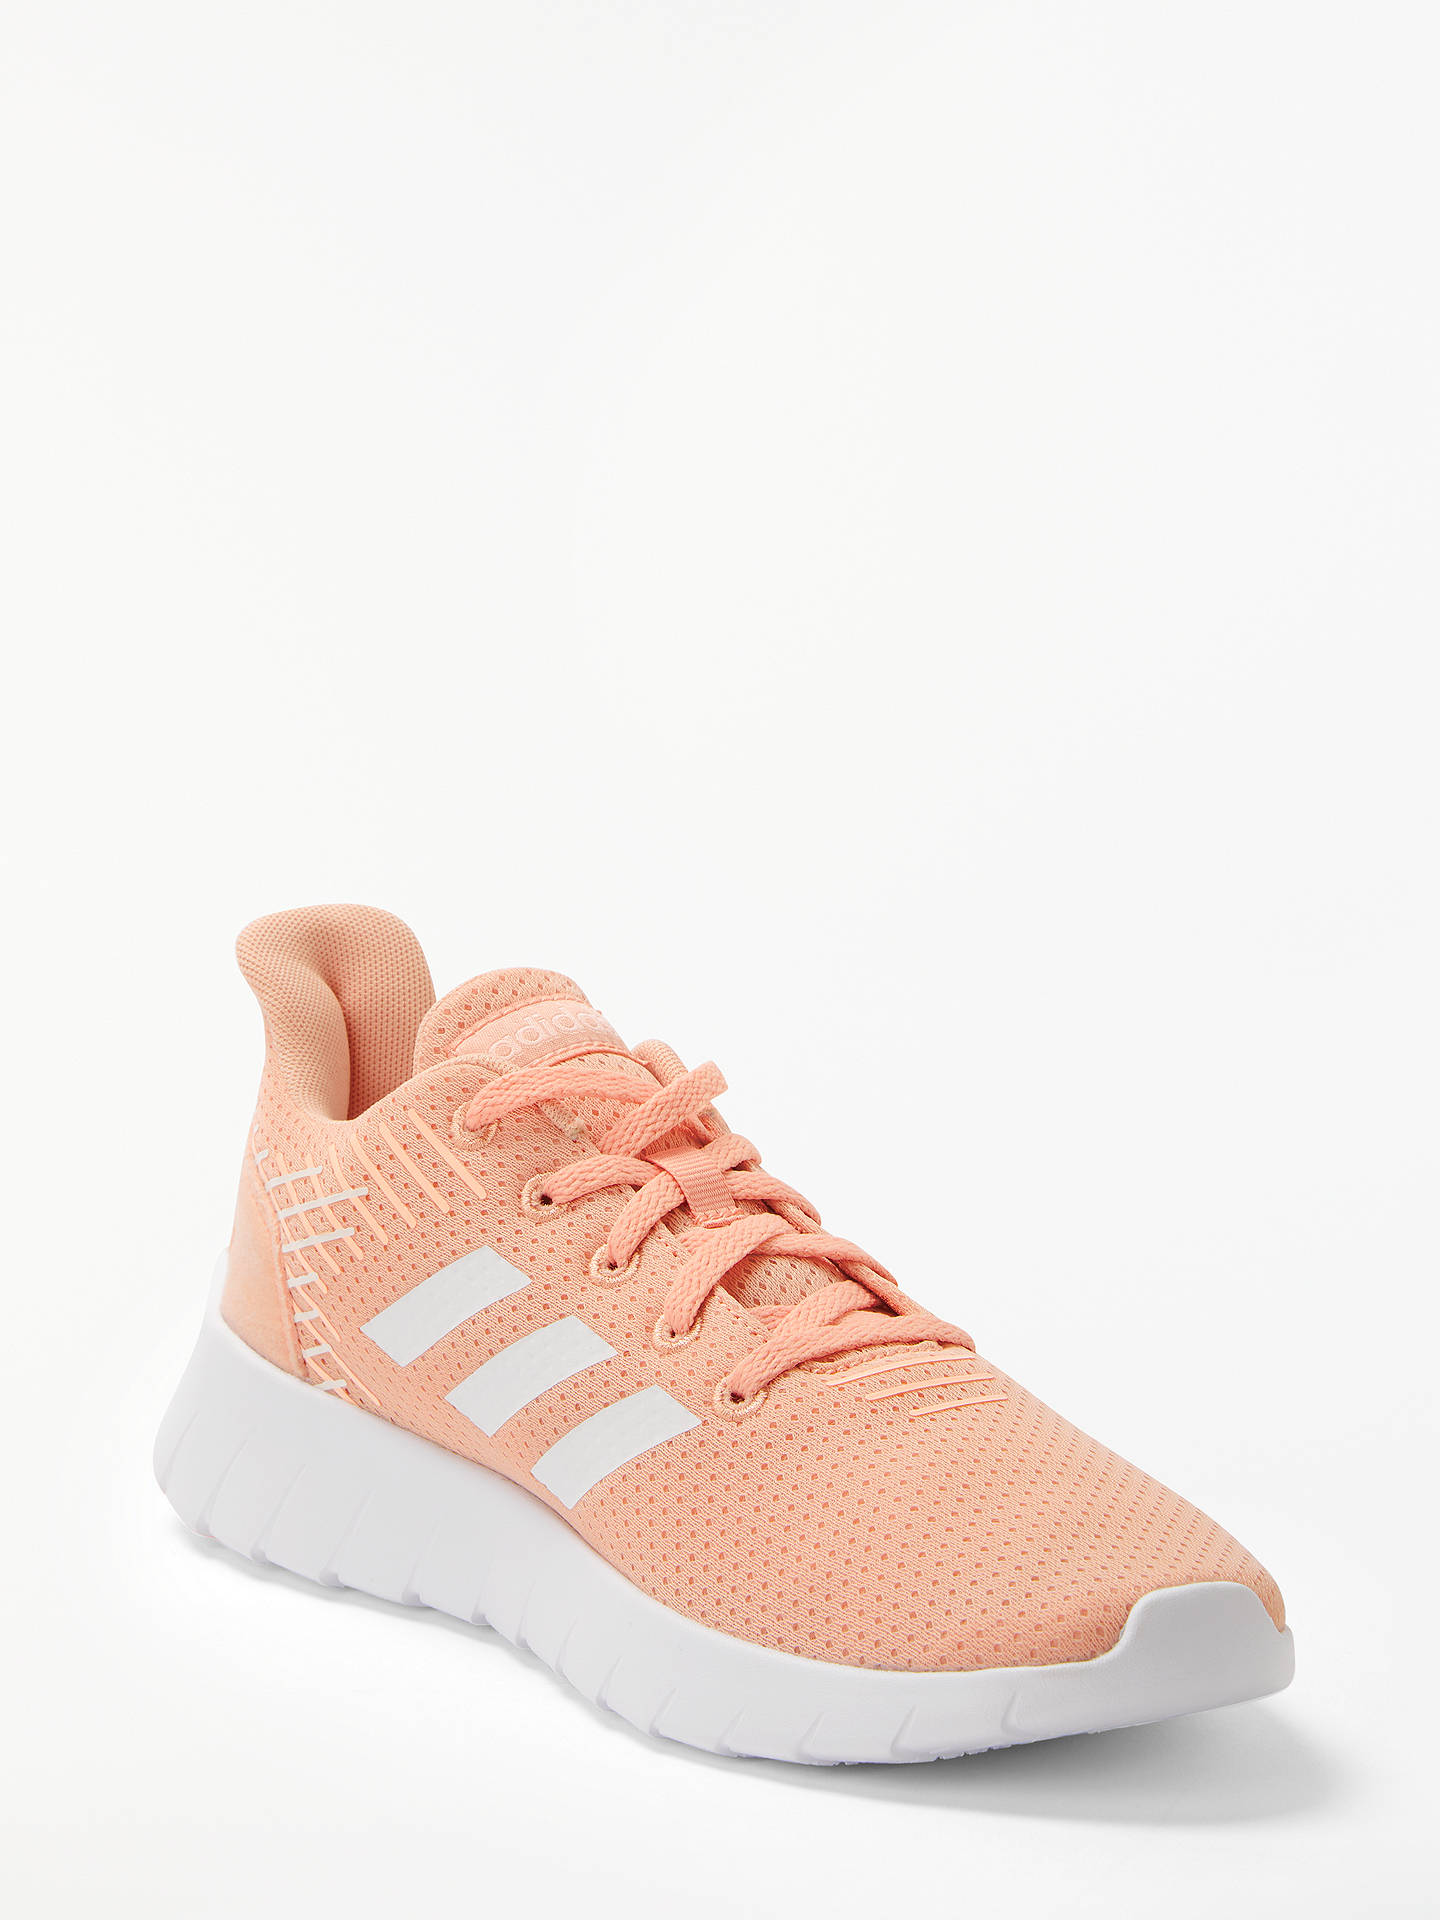 new concept 0cc4d b15ac ... Buy adidas Asweerun Women s Running Shoes, Dust Pink Cloud White, 4  Online at ...